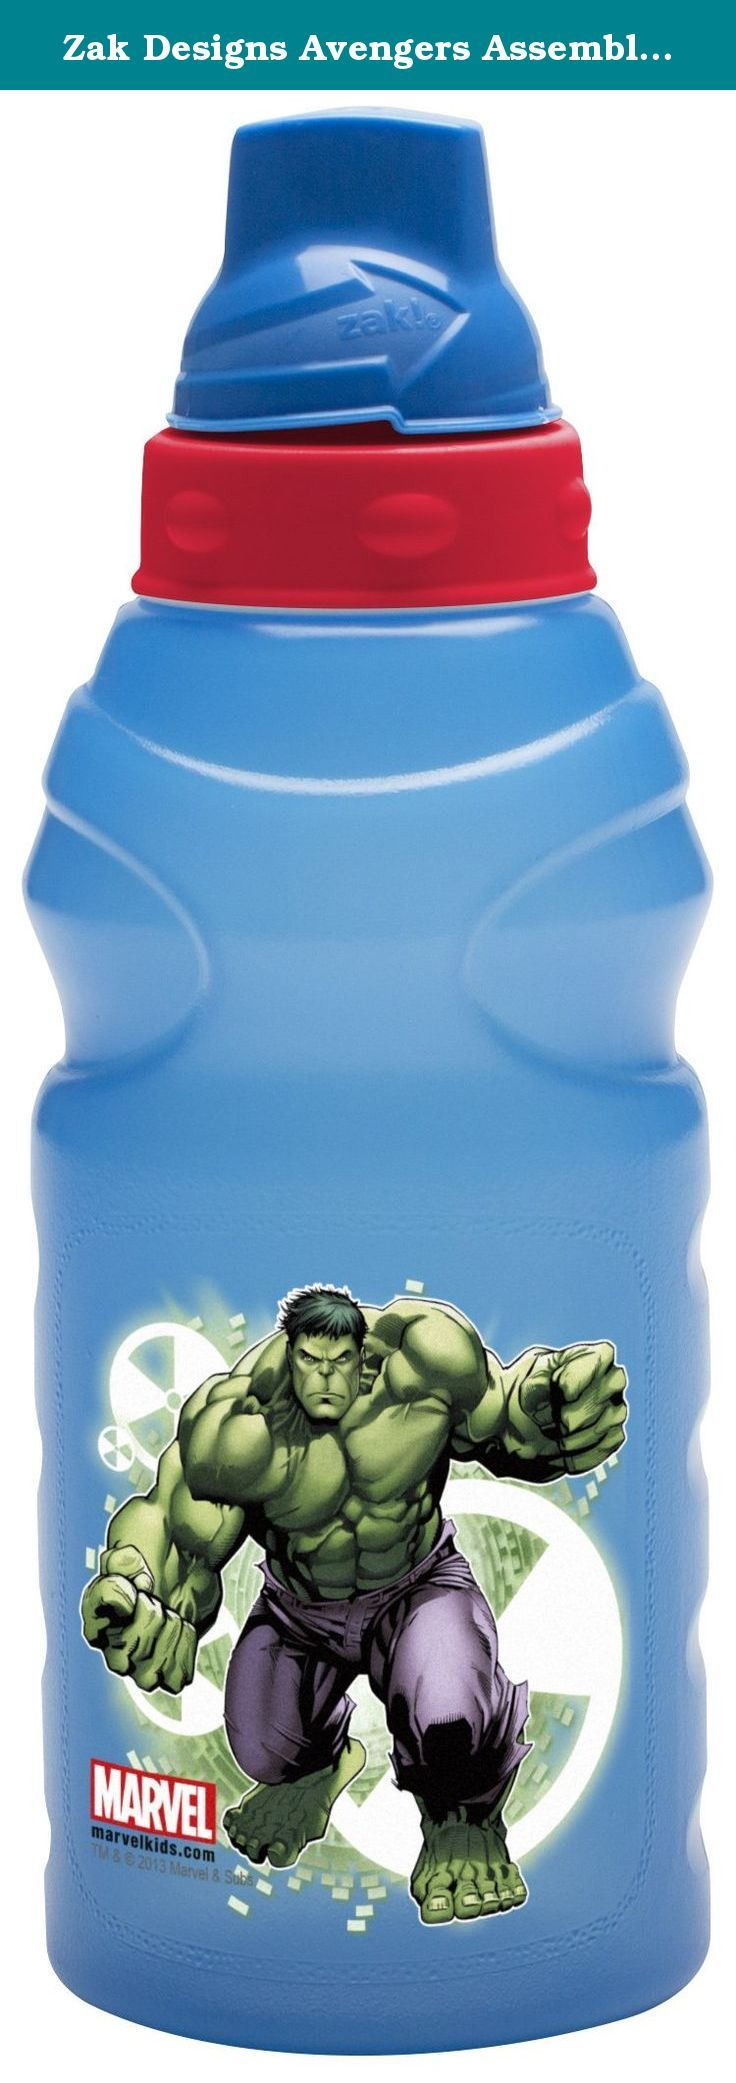 Zak Designs Avengers Assemble ChillPak HydroCanteen Bottle, 16-Ounce. The Zak Designs Avengers Assemble HydroCanteen with ChillPak Cold Hold Technology Keeps Drinks Cool for Hours. Patent pending leak-proof Liquid Lock lid prevents spills. Twist lid to open and close. ChillPak keeps your drink cool. 100% reusable. 16-ounce capacity perfect for your favorite beverage. By Zak Designs, a company that offers a wide variety of high quality dinnerware, travel ware and products at the forefront…